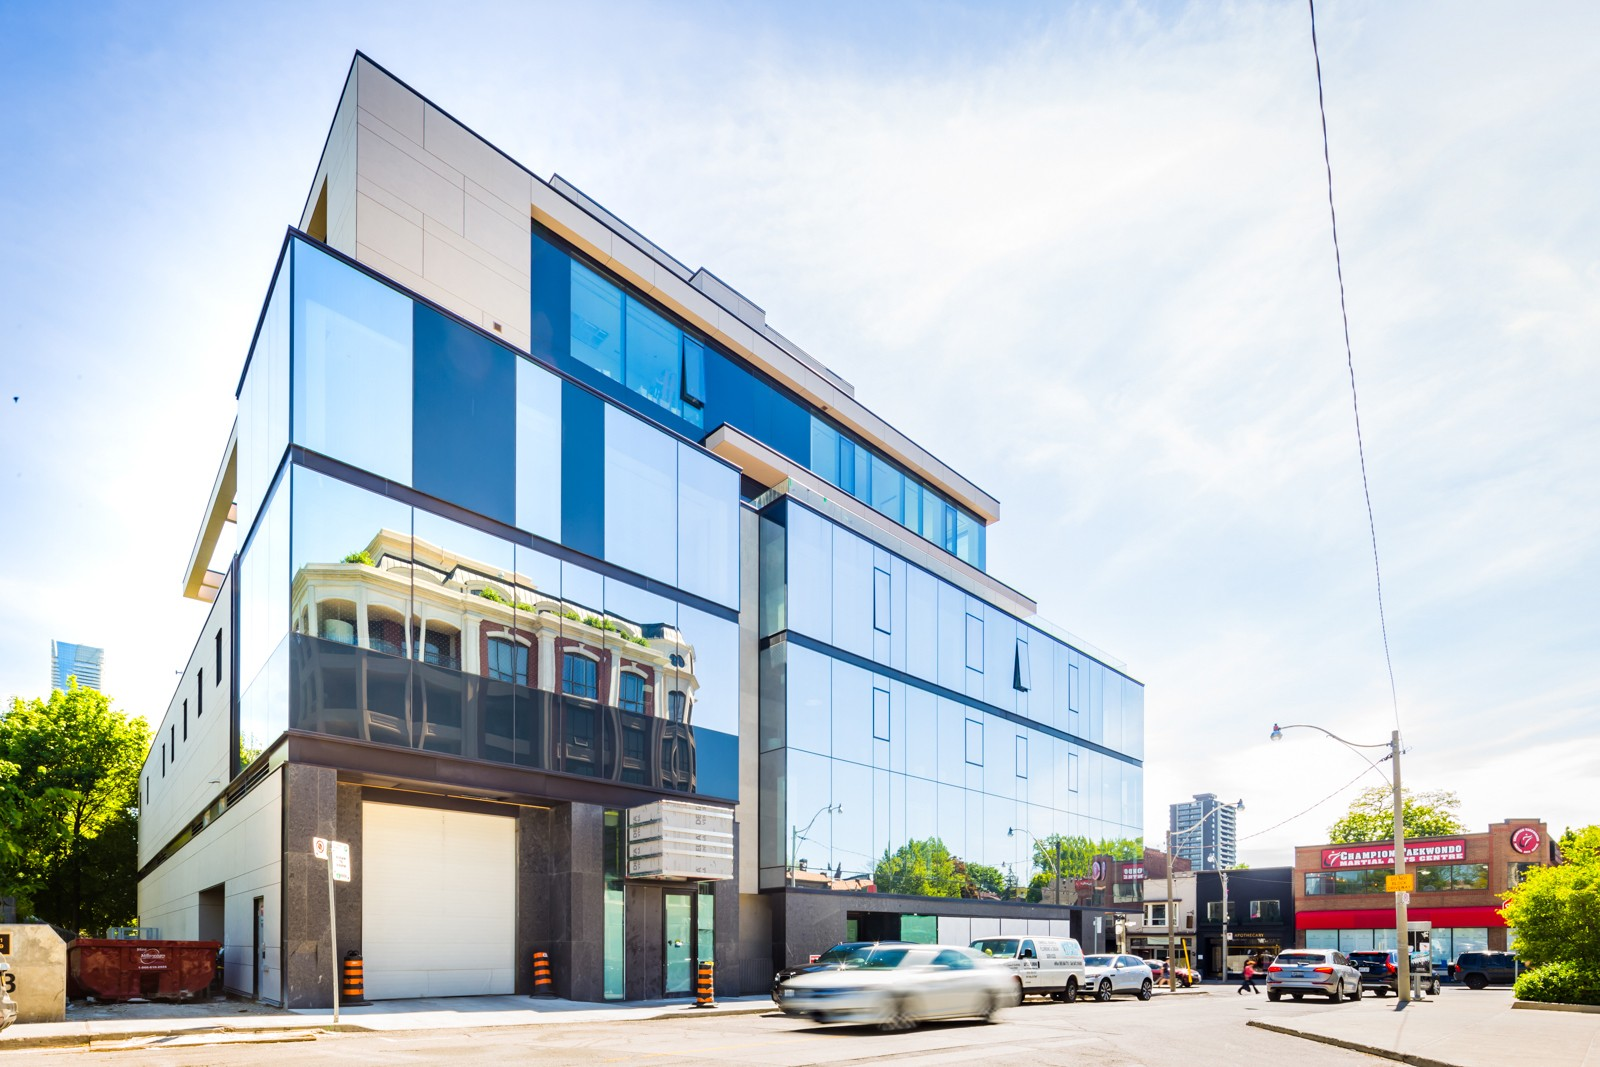 Hill and Dale Residences at 1 Roxborough St E, Toronto 1